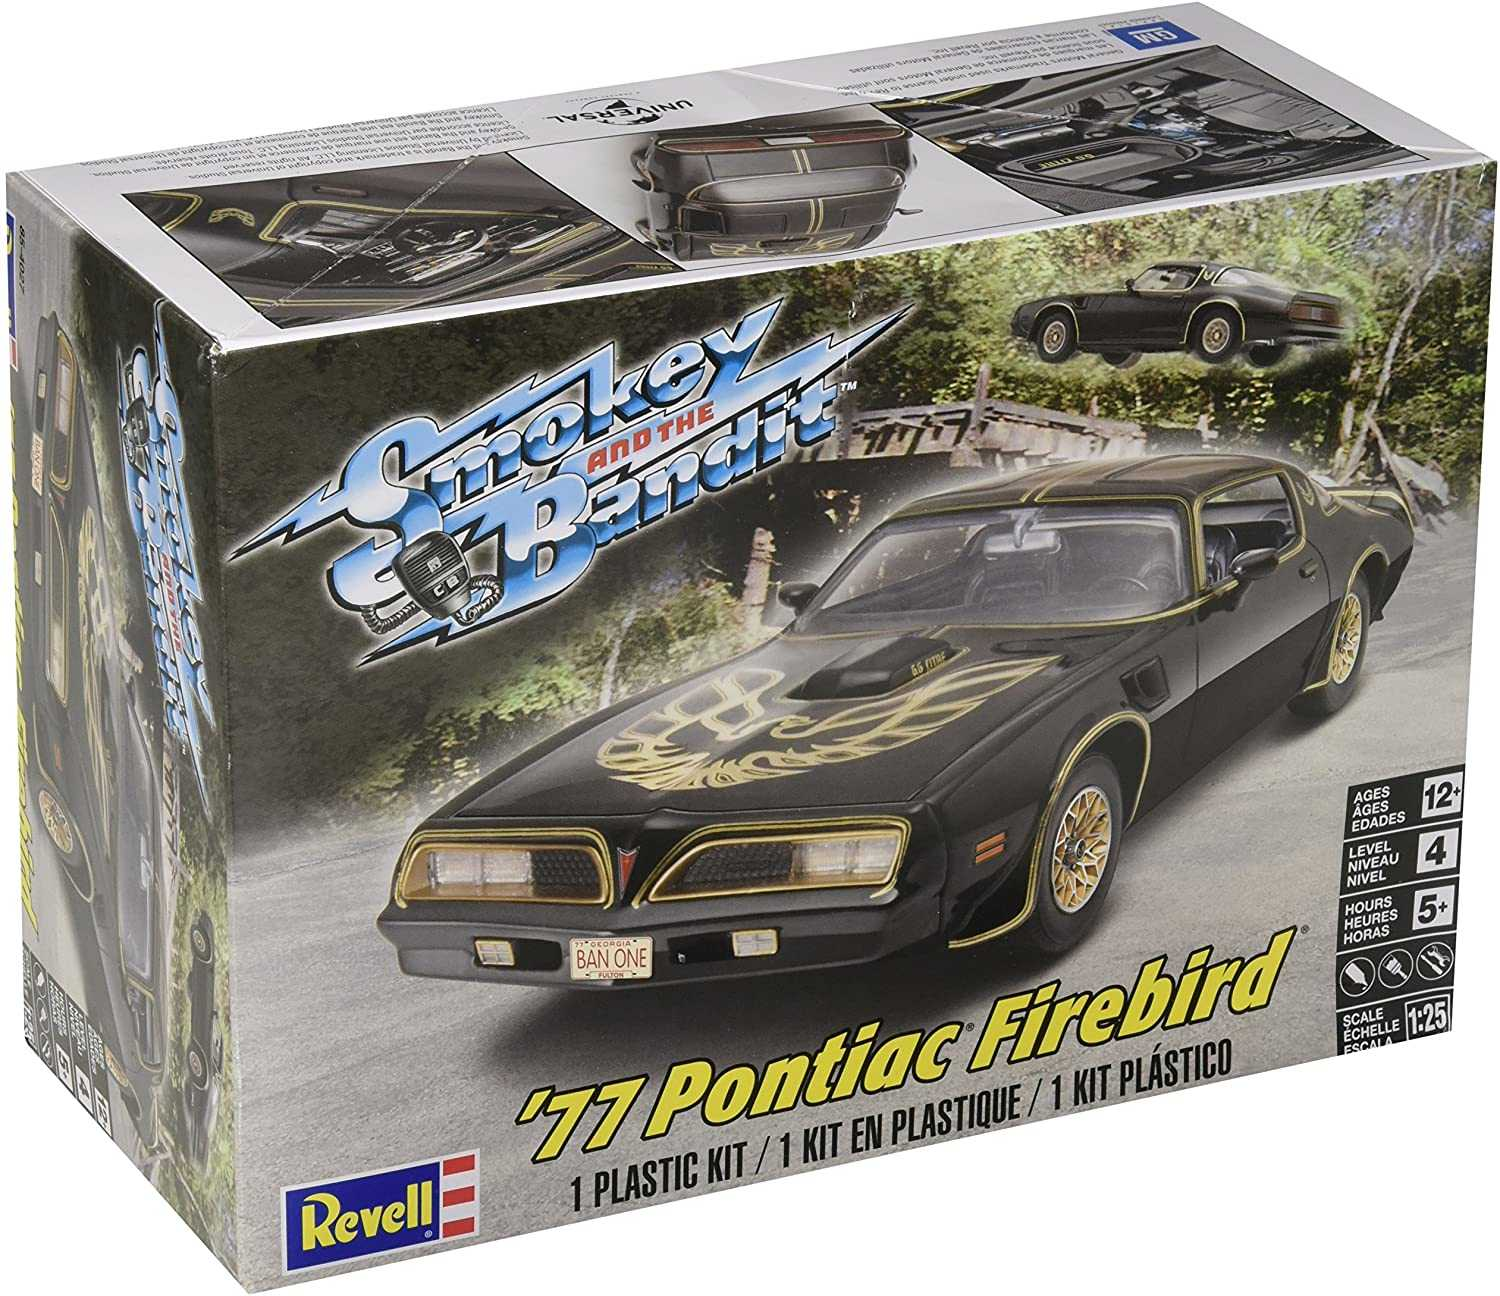 Revell - Monogram - auto 4027 - Smokey and the Bandit 77 Pontiac Firebird 1:25